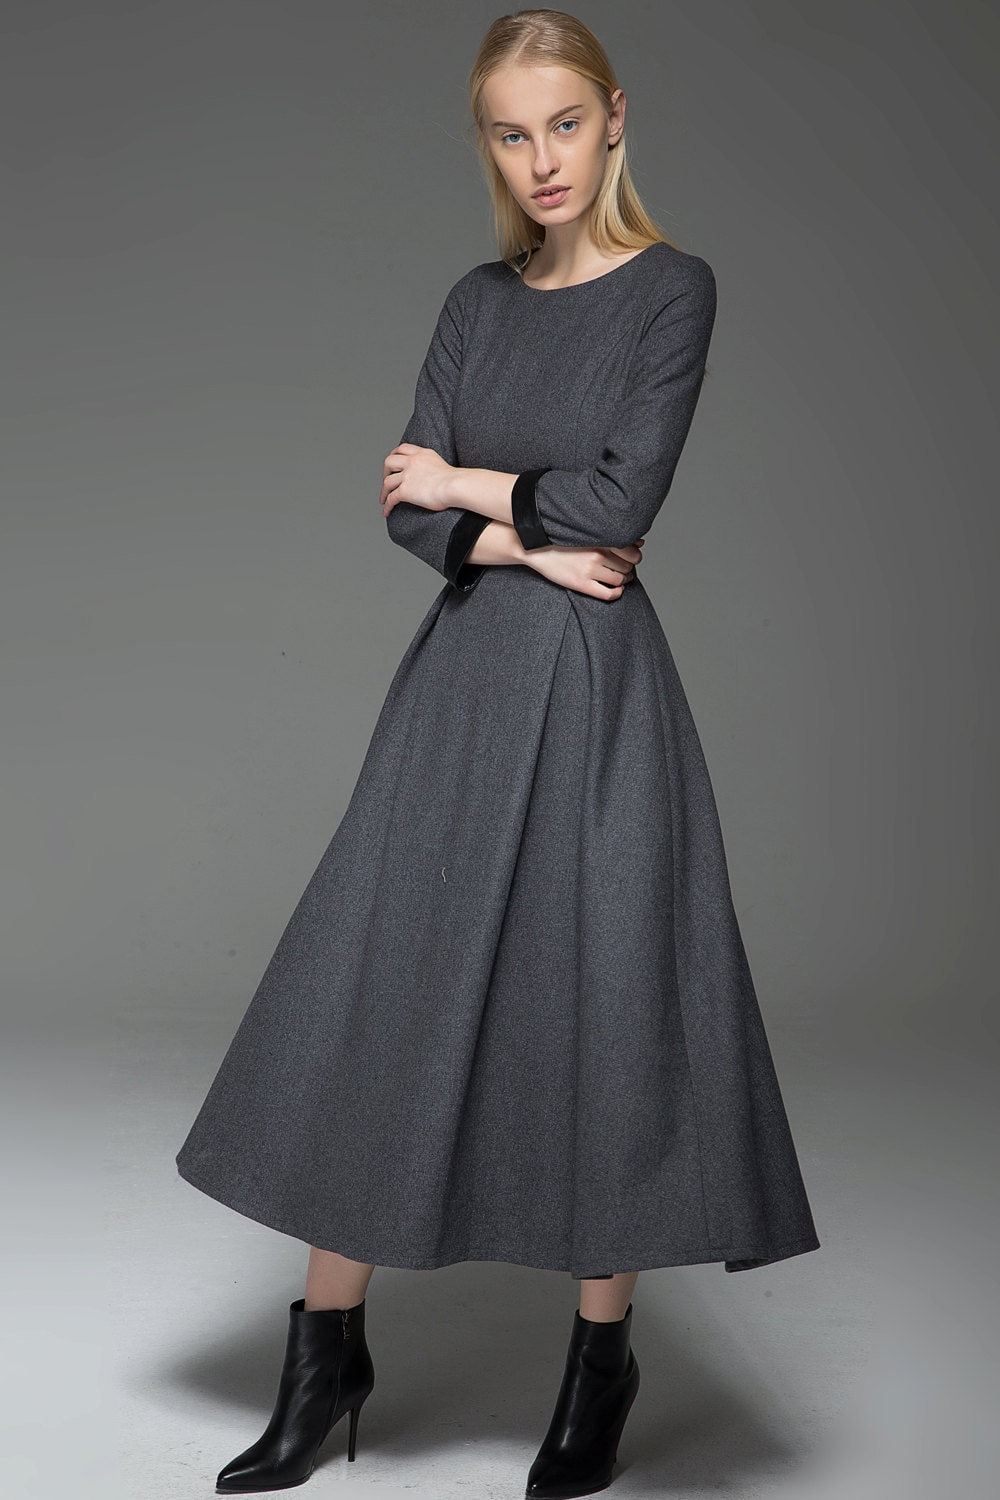 Gray Wool Dress Classic Long Fitted Tailored Warm Winter